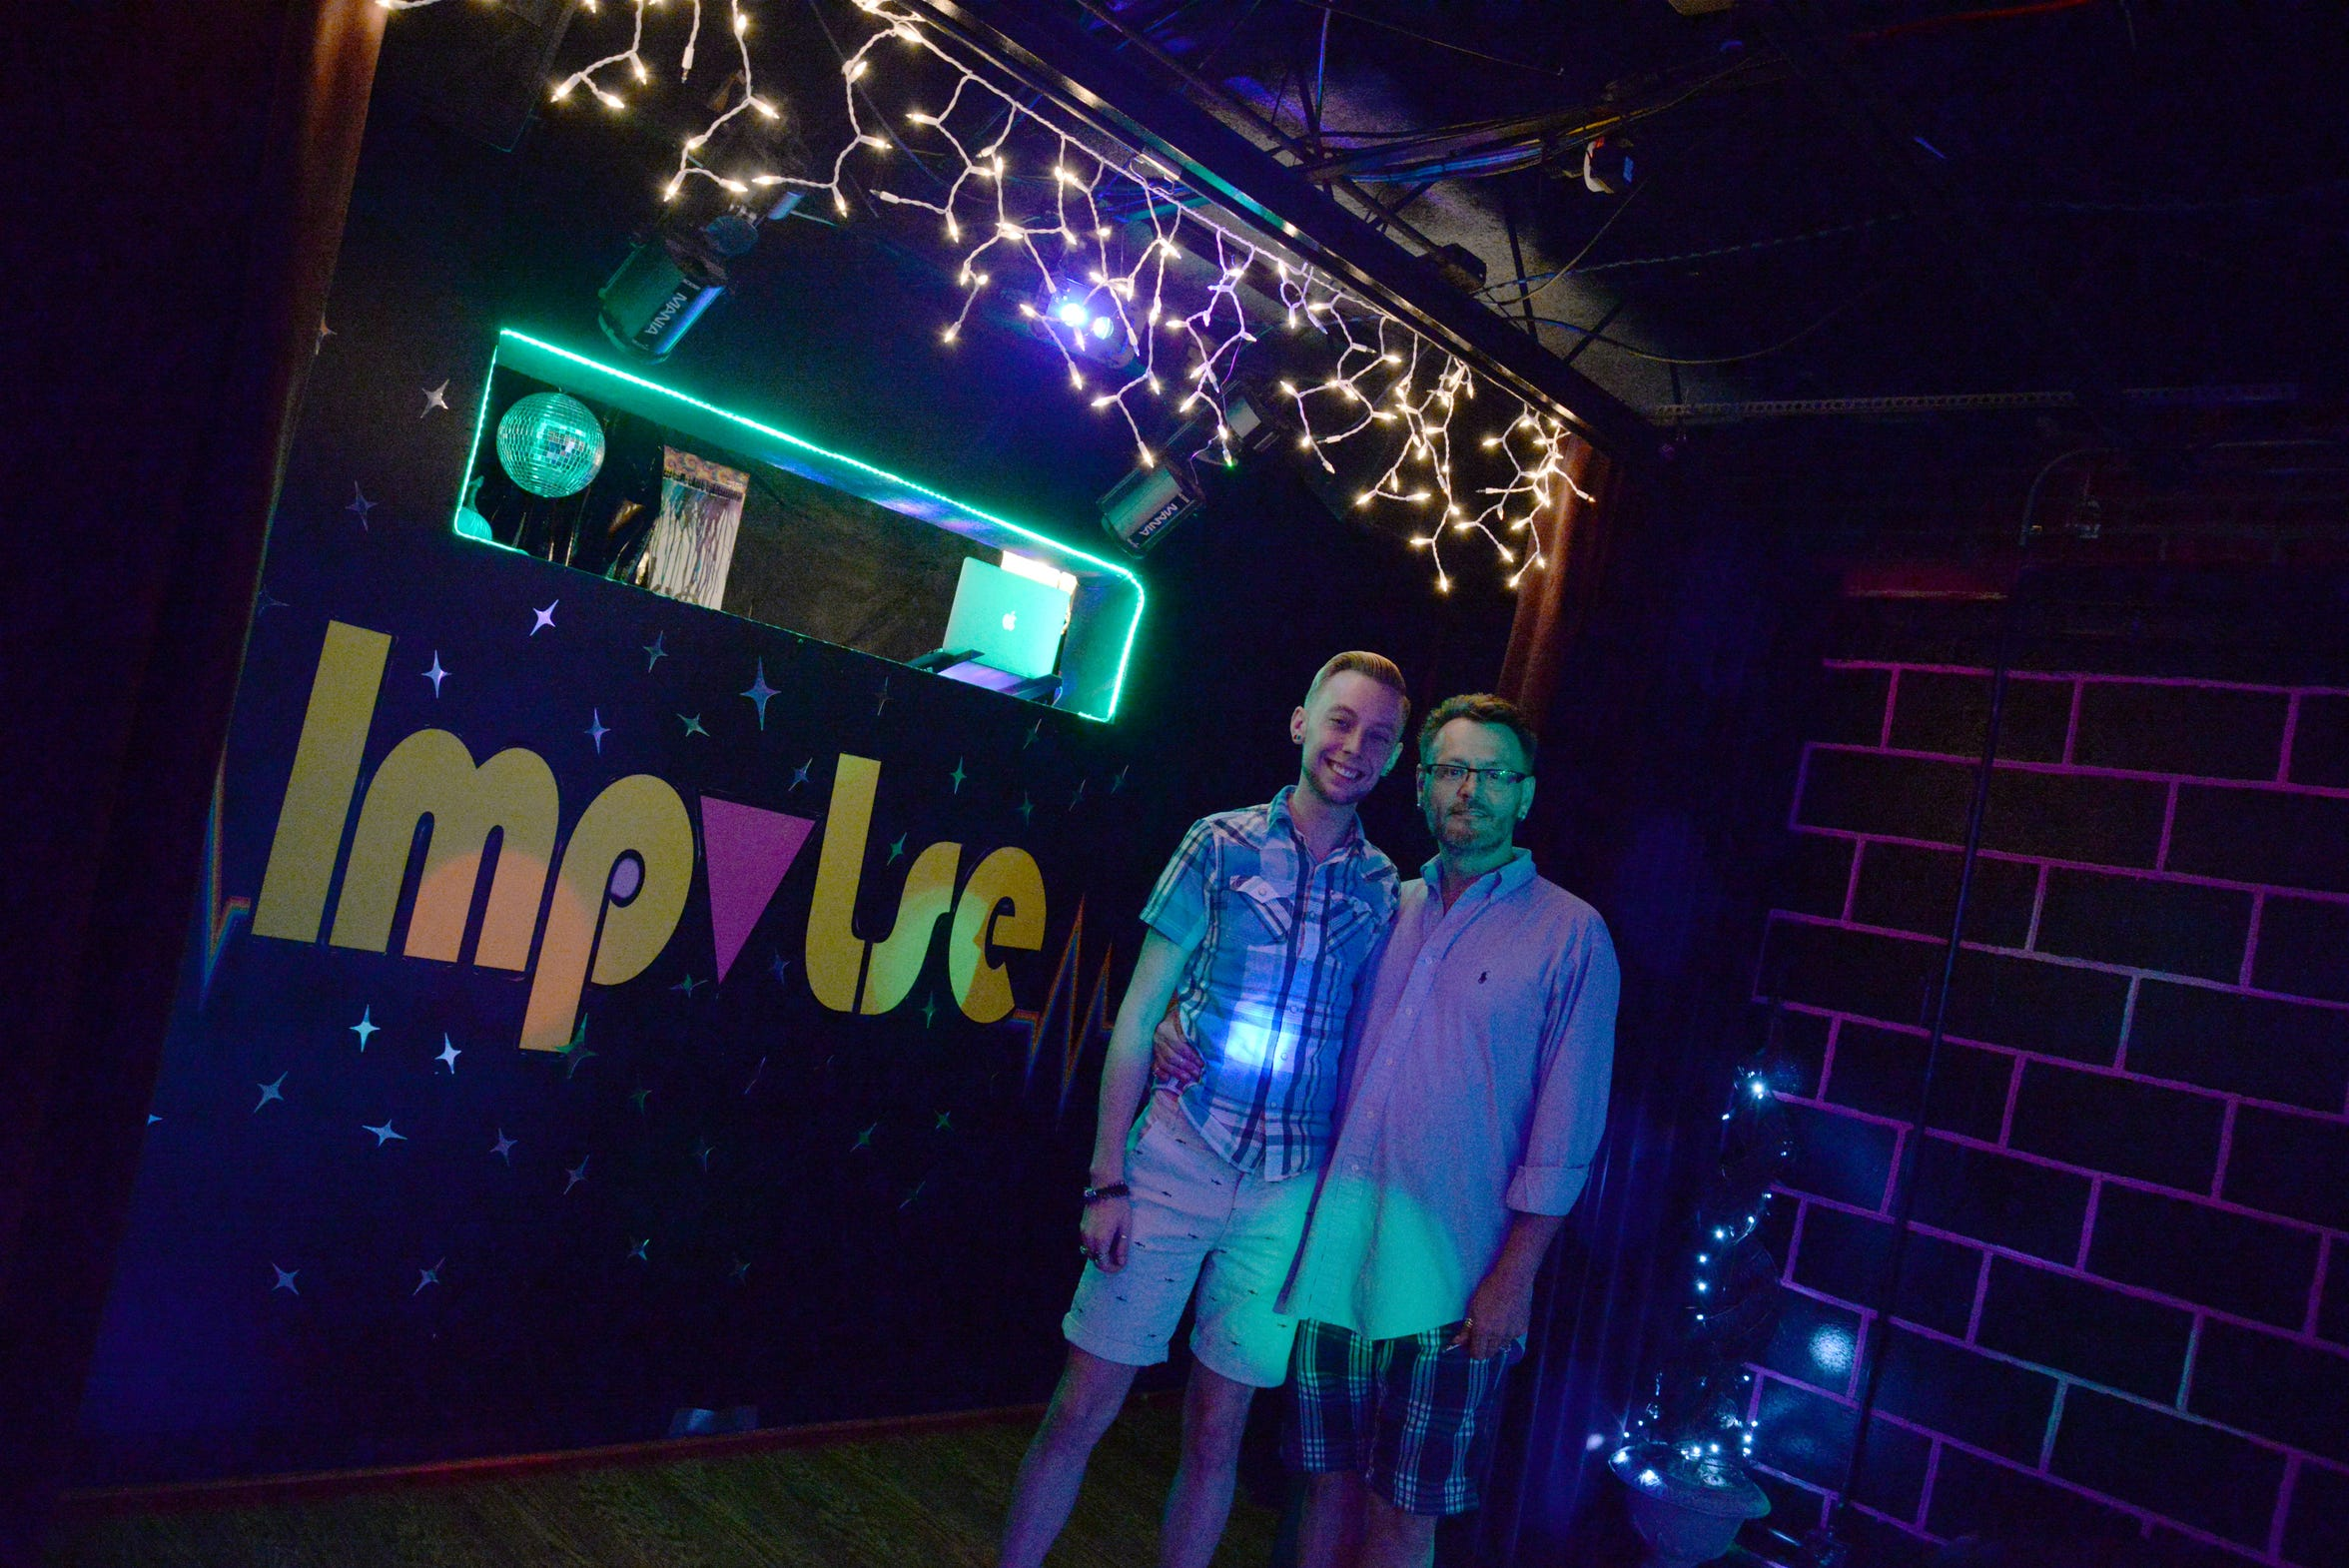 Inside Impulse Social Gay Club in Charlottesville with co-owners Angus Butcher and Kevin Morris-Lewis. The club recently received permits to begin construction at a Waynesboro location on East Main Street.